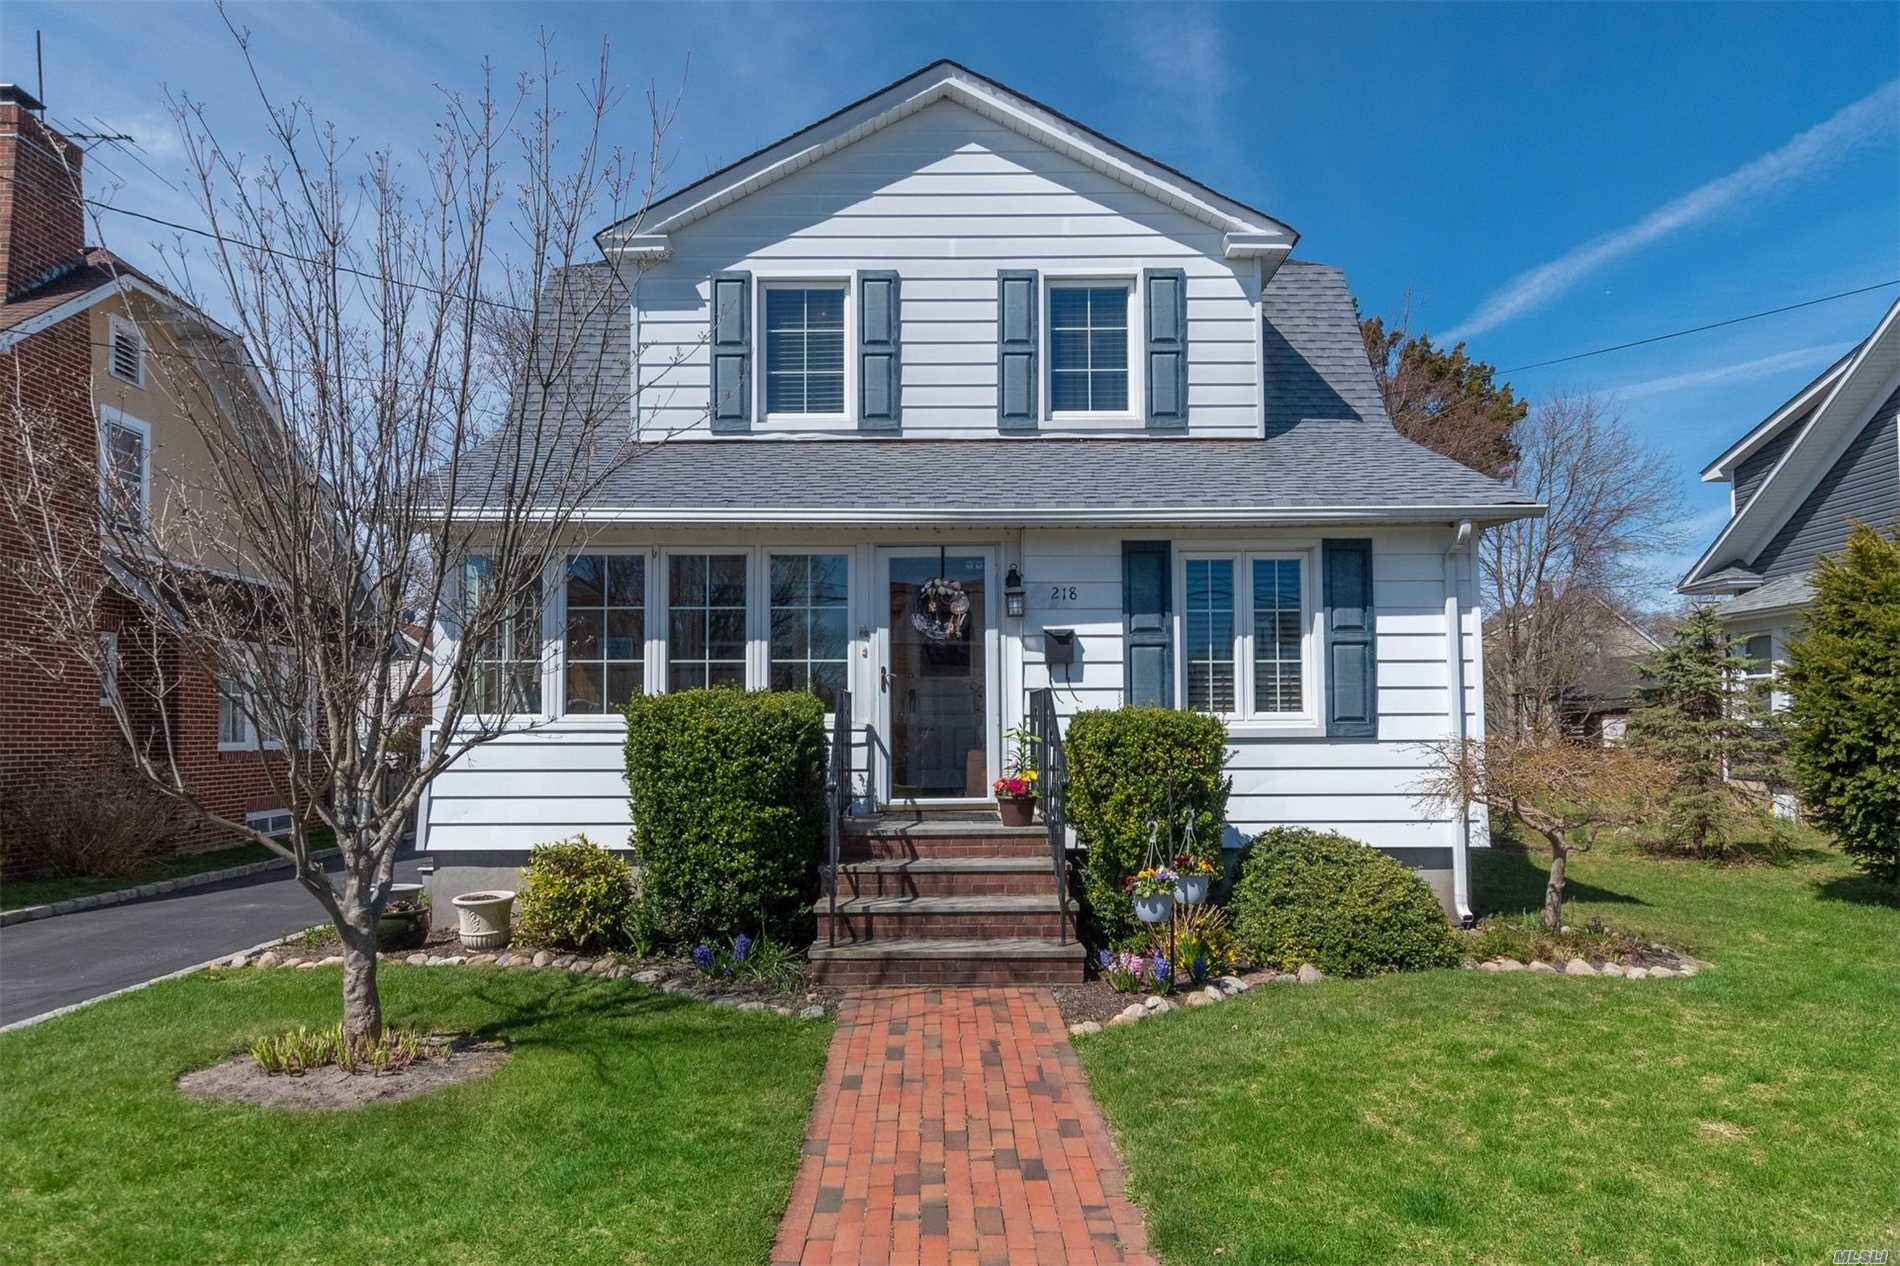 Pride of Ownership can be found in this Diamond Condition Dutch Colonial Home In The Heart Of Patchogue Village.You will Enter Into A Charming Sunlite Porch & immediately appreciate the craftsmanship of the old world charm this home has to offer.This home has been tastefully & meticulously updated to modern times yet it still keeps the character of yesteryear.Perfectly located & Close To The Village Restaurants & Entertainment & still Steps to the beach & Ferry.Low Taxes a must see !!!!